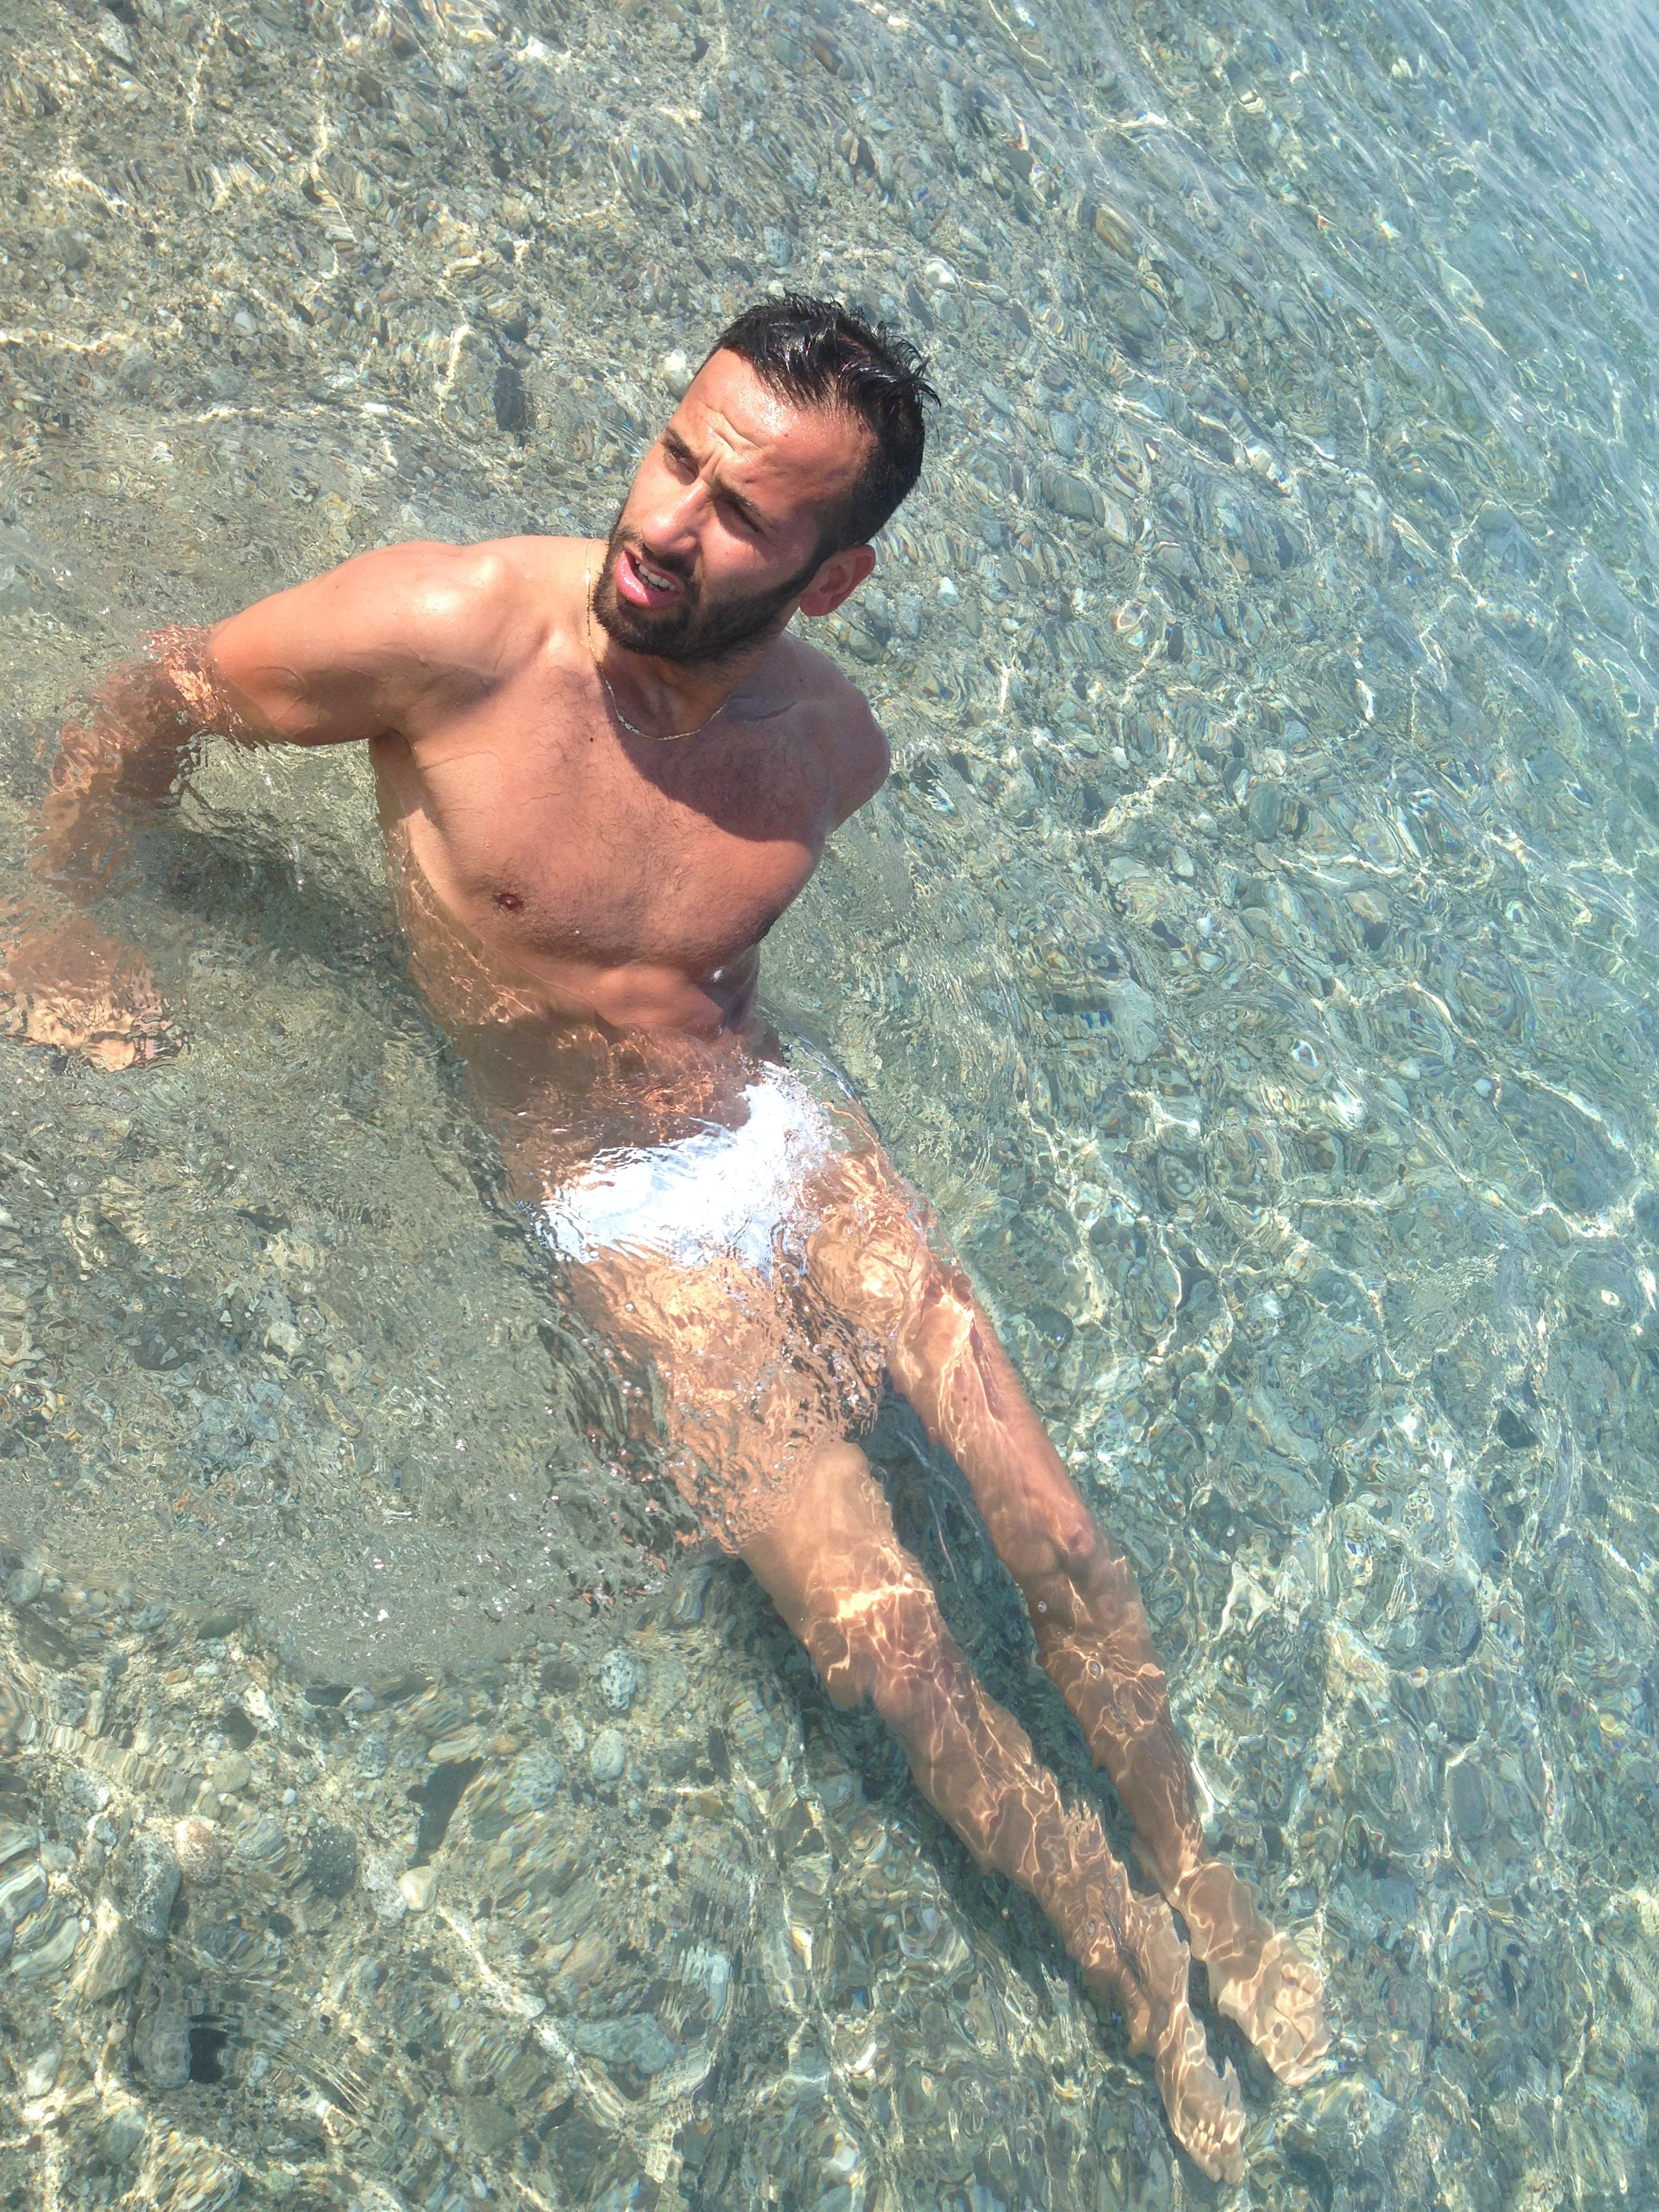 water, high angle view, beach, sea, lifestyles, leisure activity, shore, relaxation, sand, shirtless, wet, day, vacations, sunlight, outdoors, barefoot, nature, surf